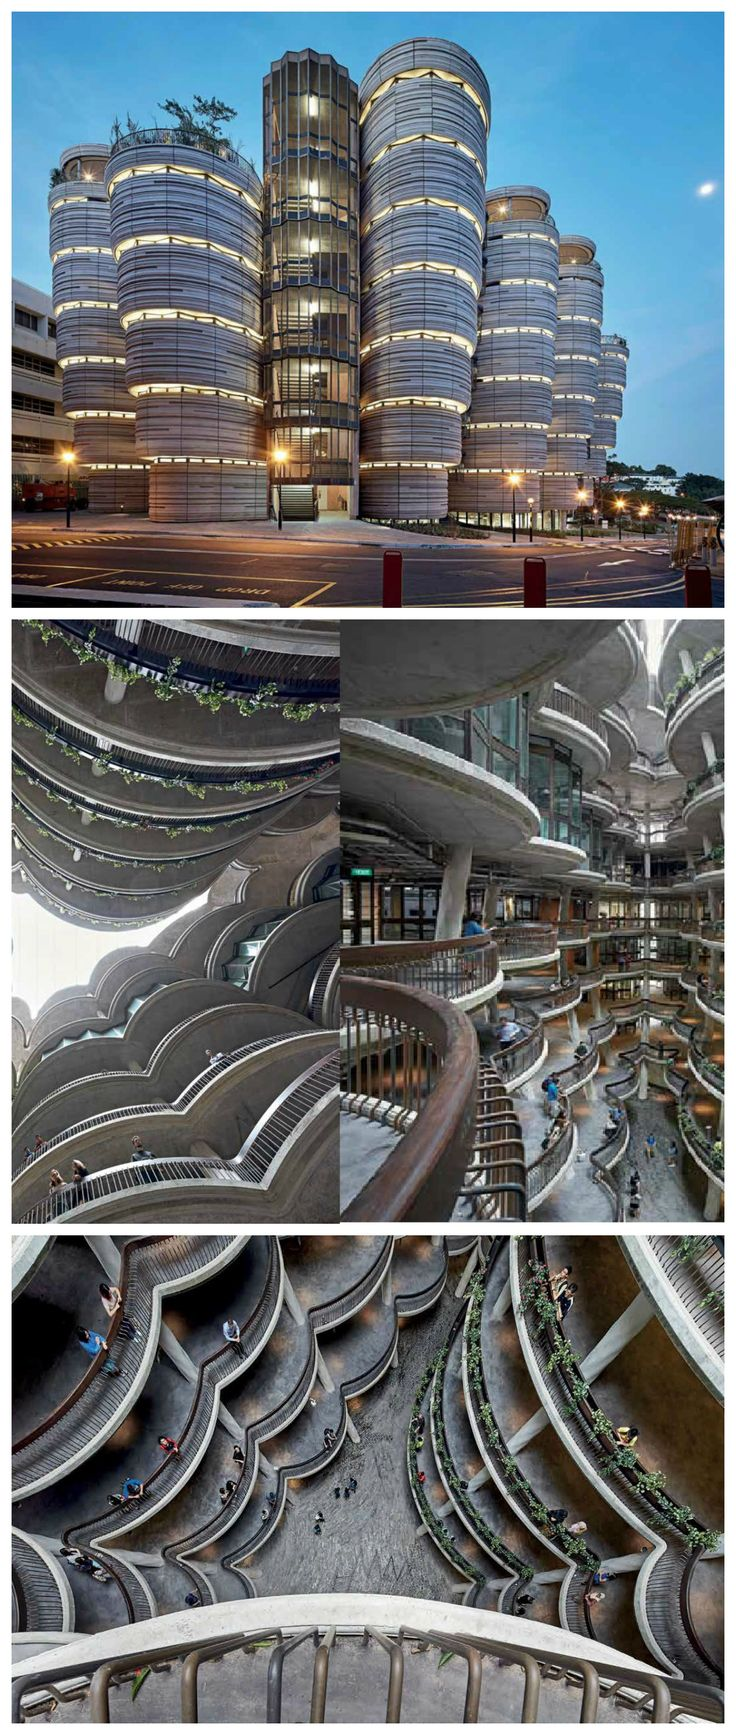 Learning Hub in Singapore by Heatherwick Studio